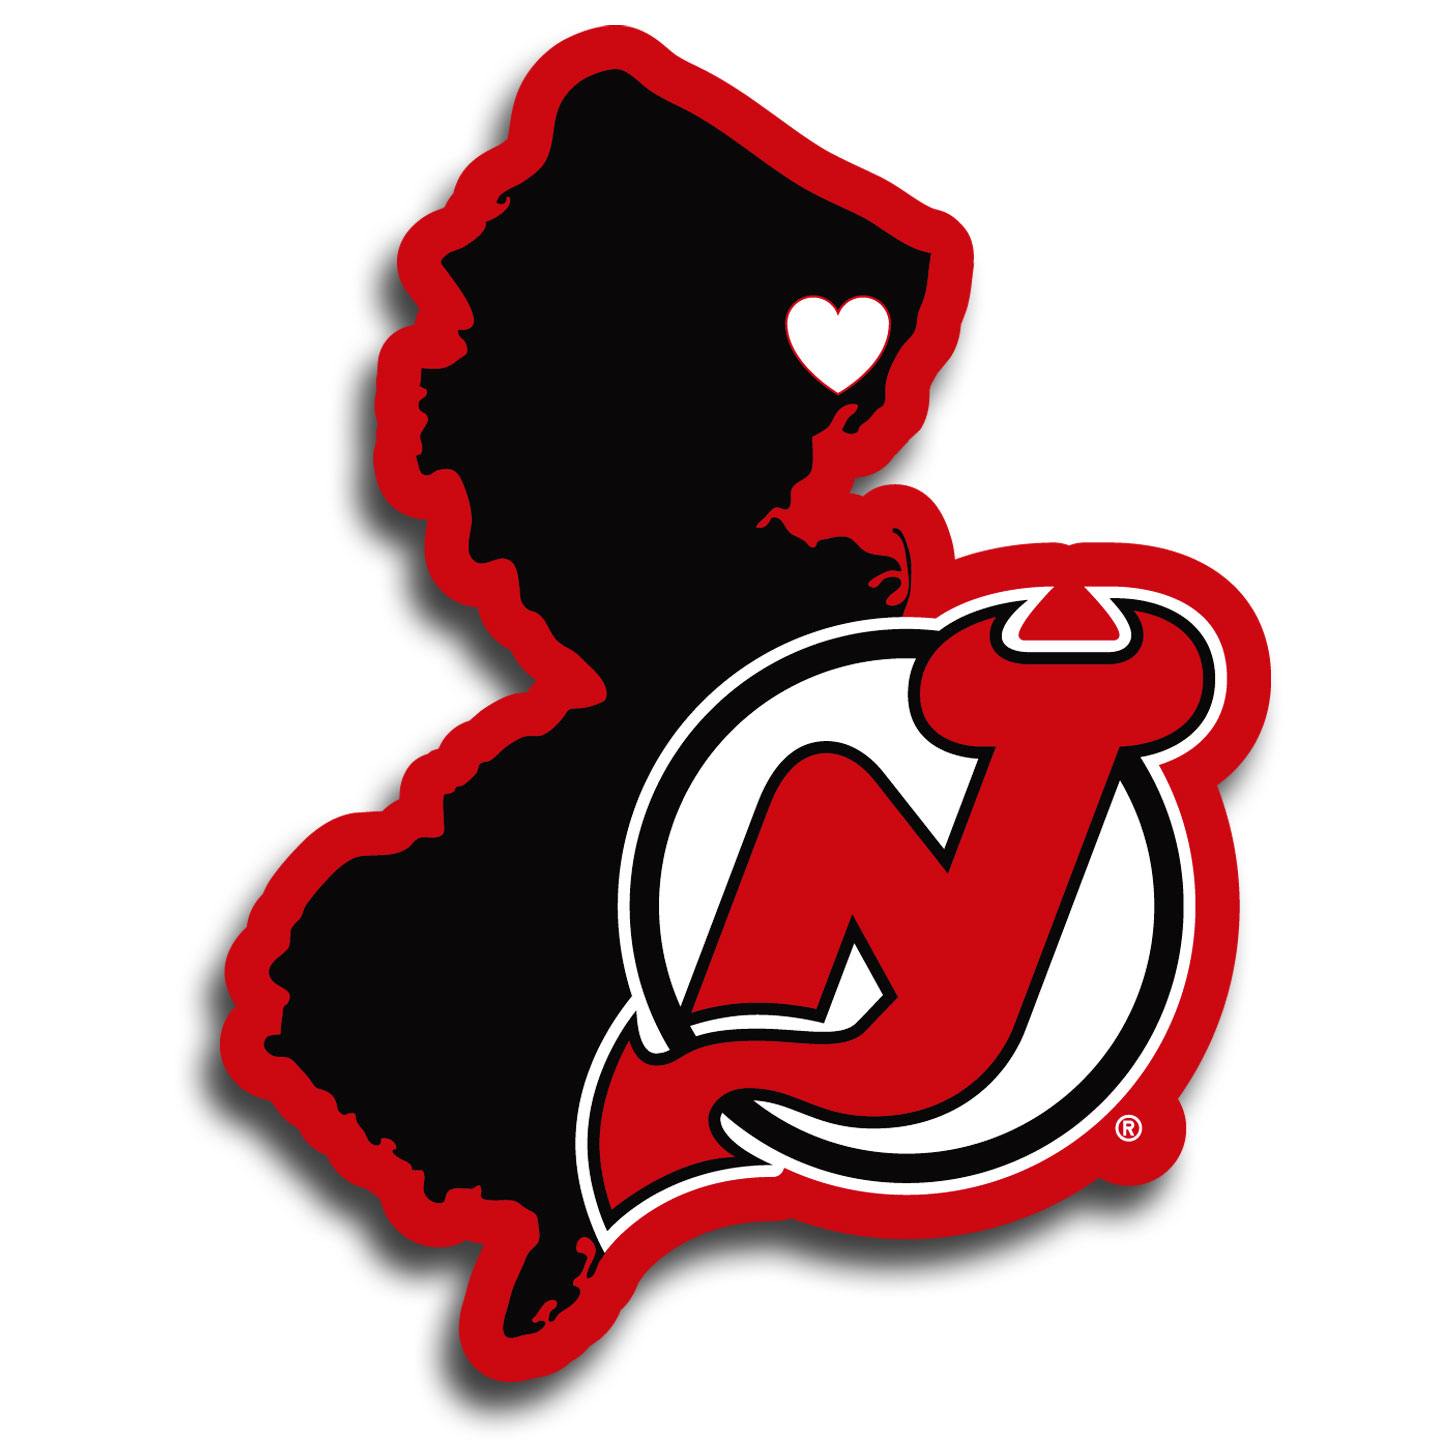 New Jersey Devils® Home State Decal - It's a home state decal with a sporty twist! This New Jersey Devils® decal feature the team logo over a silhouette of the state in team colors and a heart marking the home of the team. The decal is approximately 5 inches on repositionable vinyl.